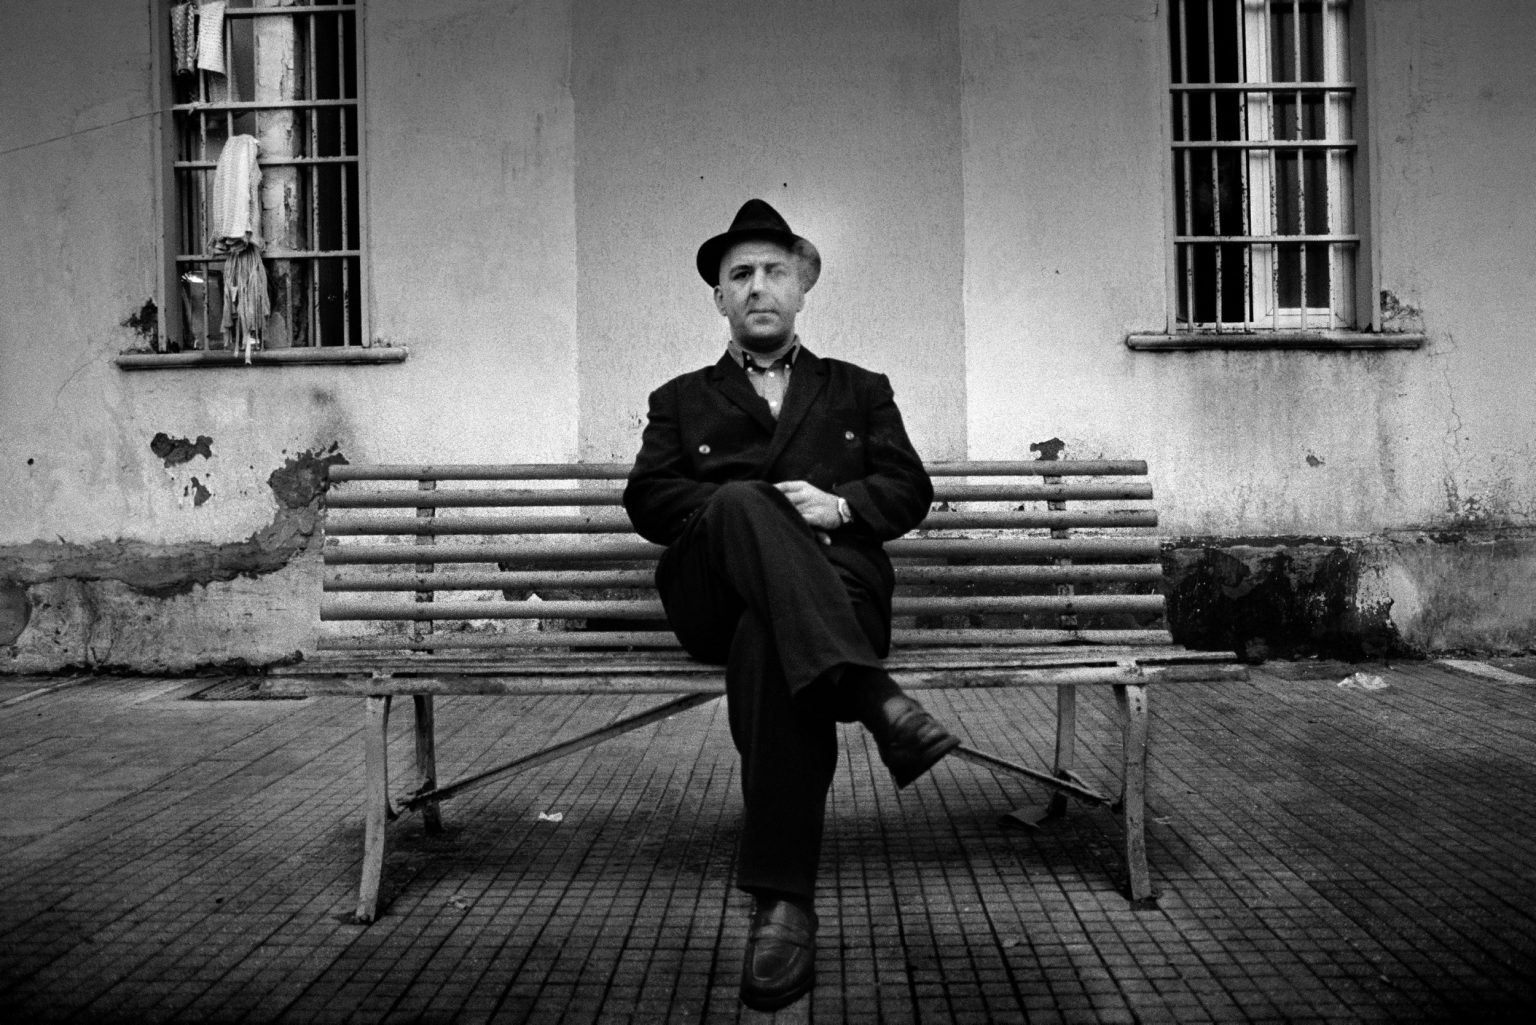 """Aversa ( Caserta ), November 2006 - The Judicial Psychiatric Hospital """"Filippo Saporito"""" - The 9th division yard: an inmate sitting on a bench during the free time"""